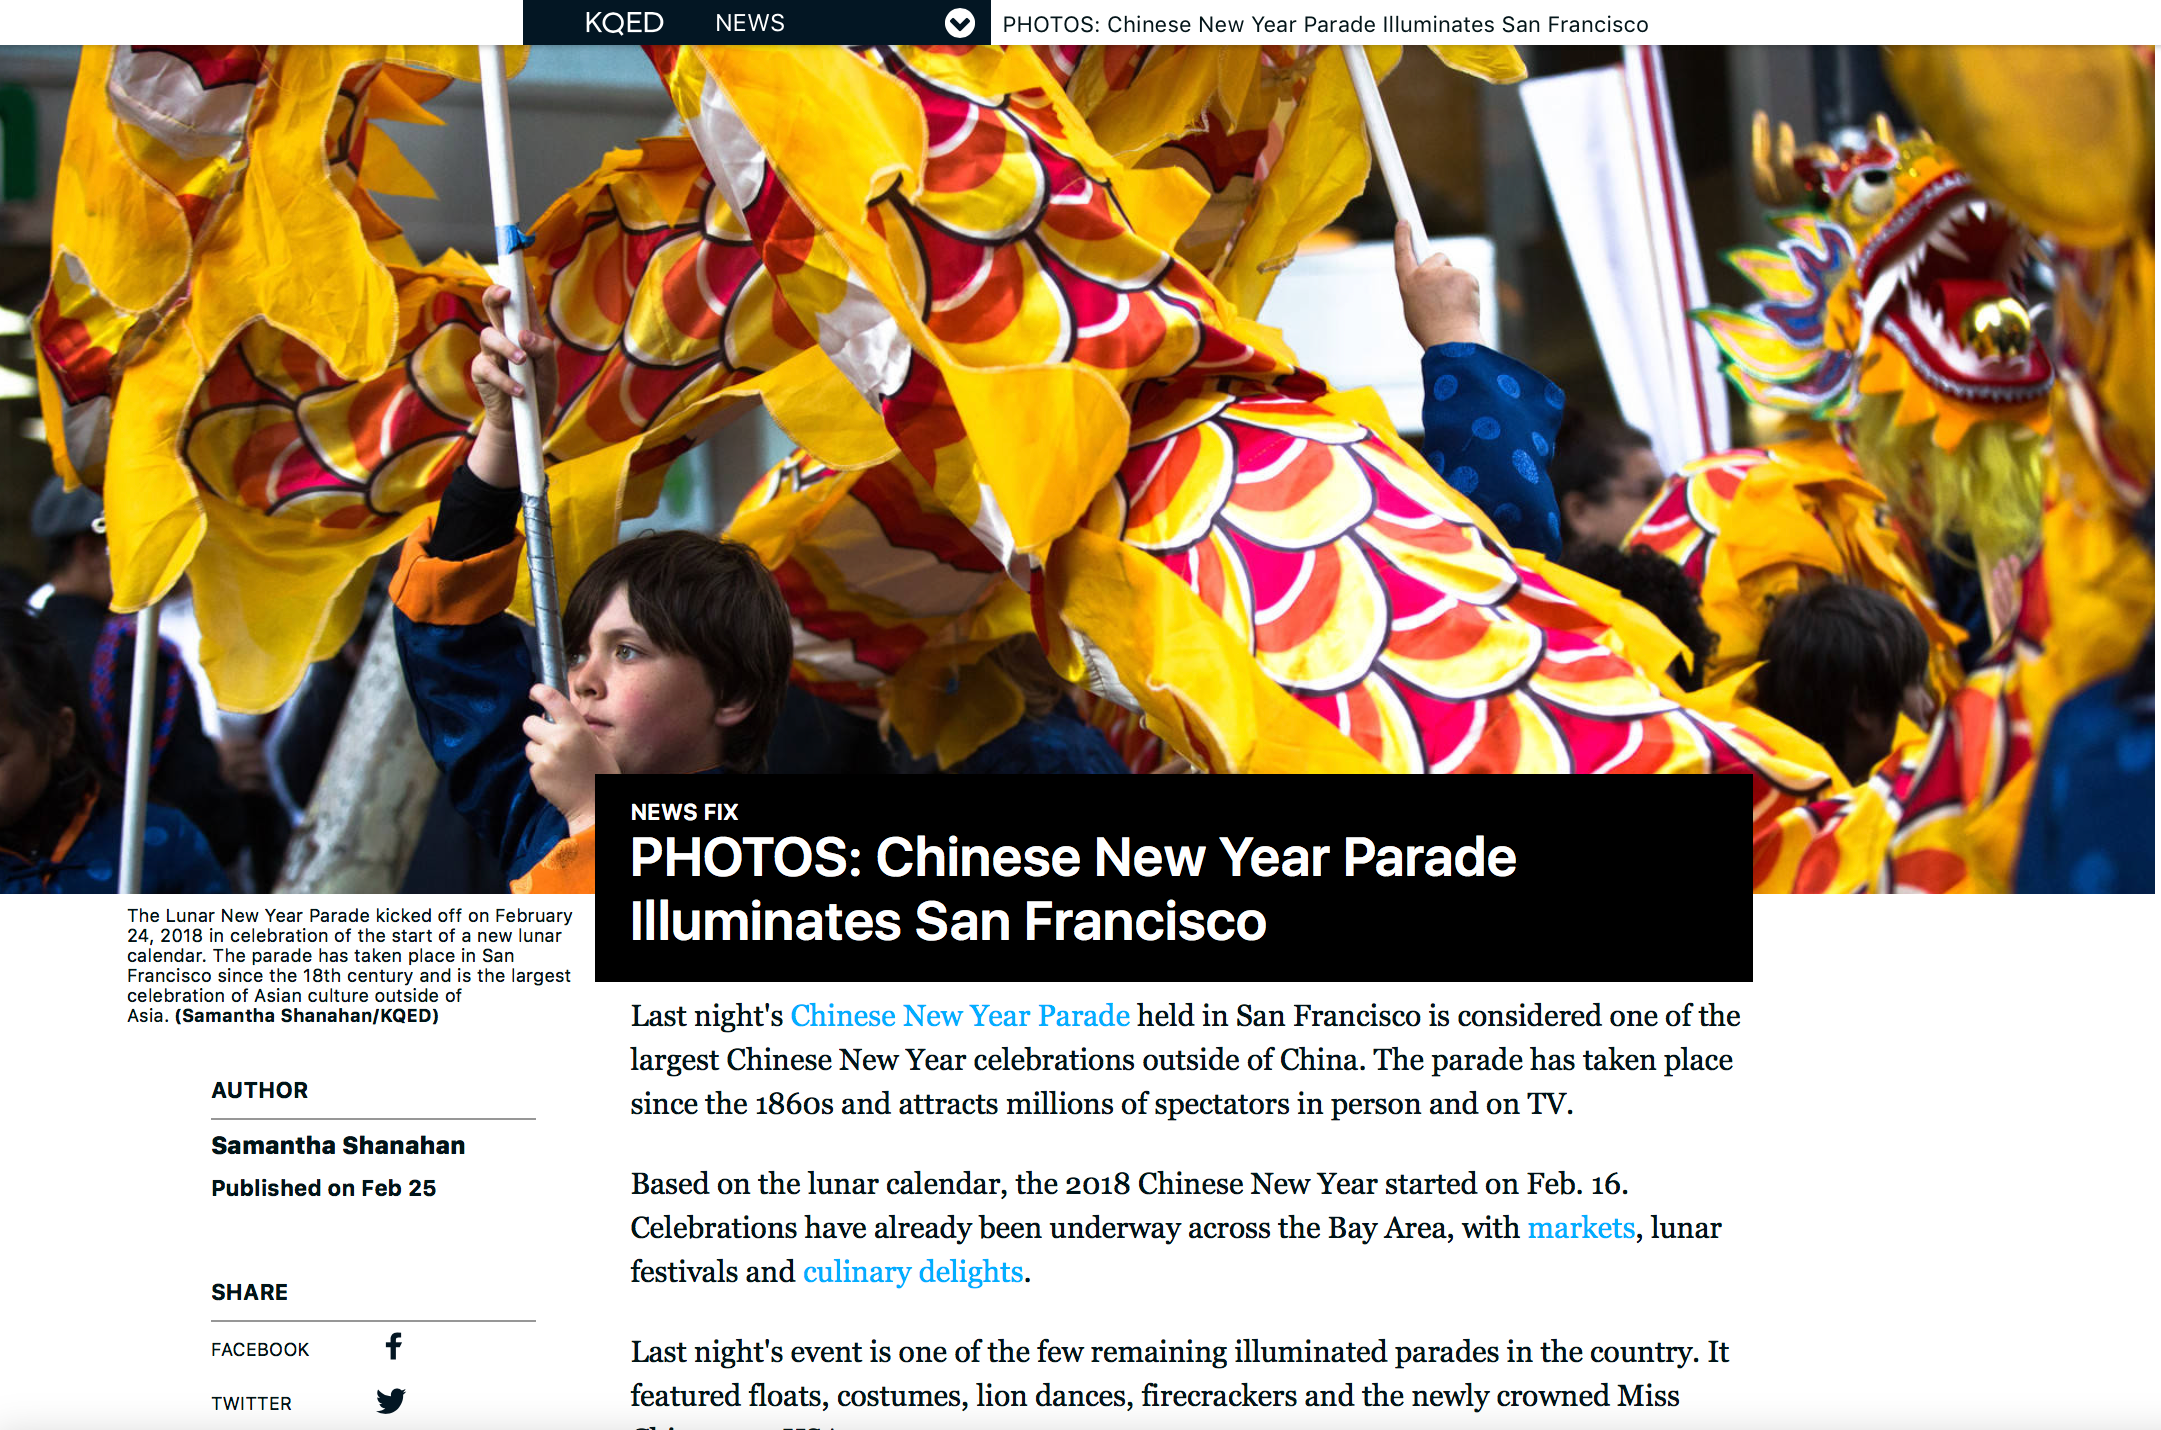 (KQED/News Fix) Chinese New Year Parade Illuminates San Francisco